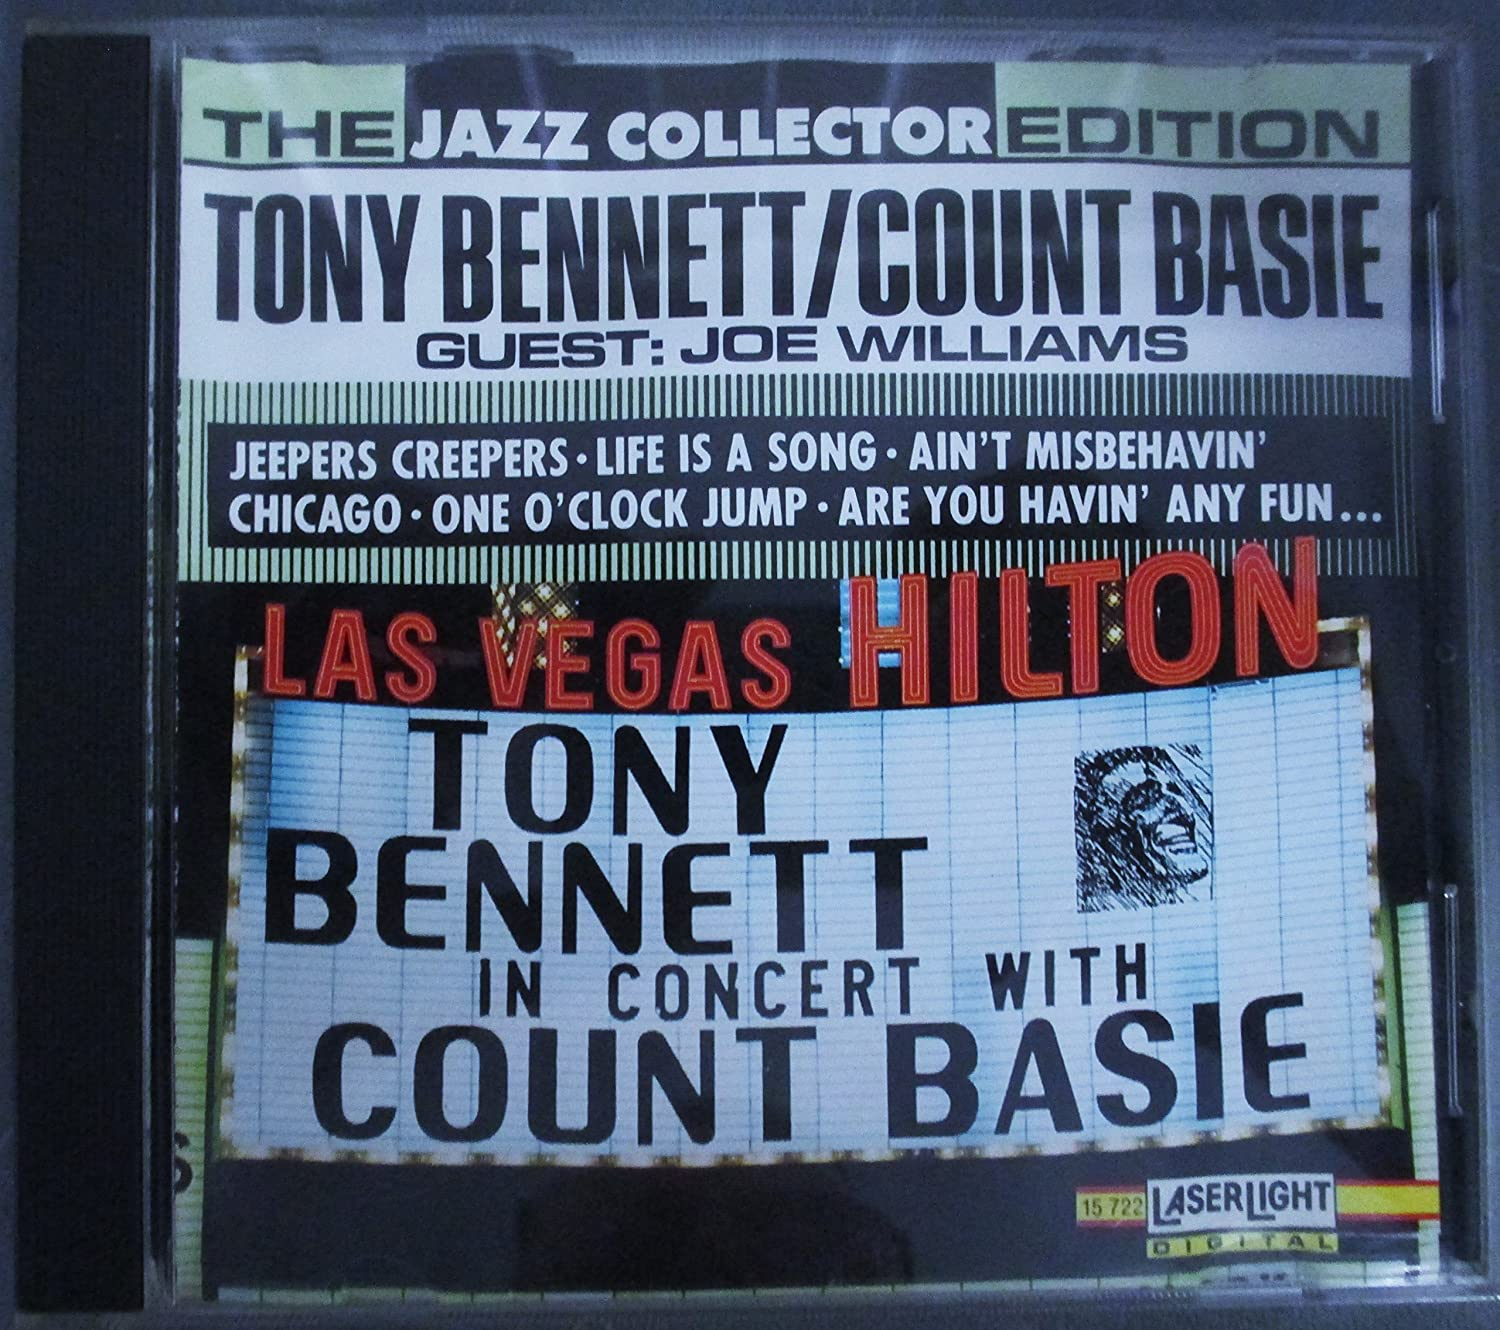 Tony Bennett In Concert With Count Basie